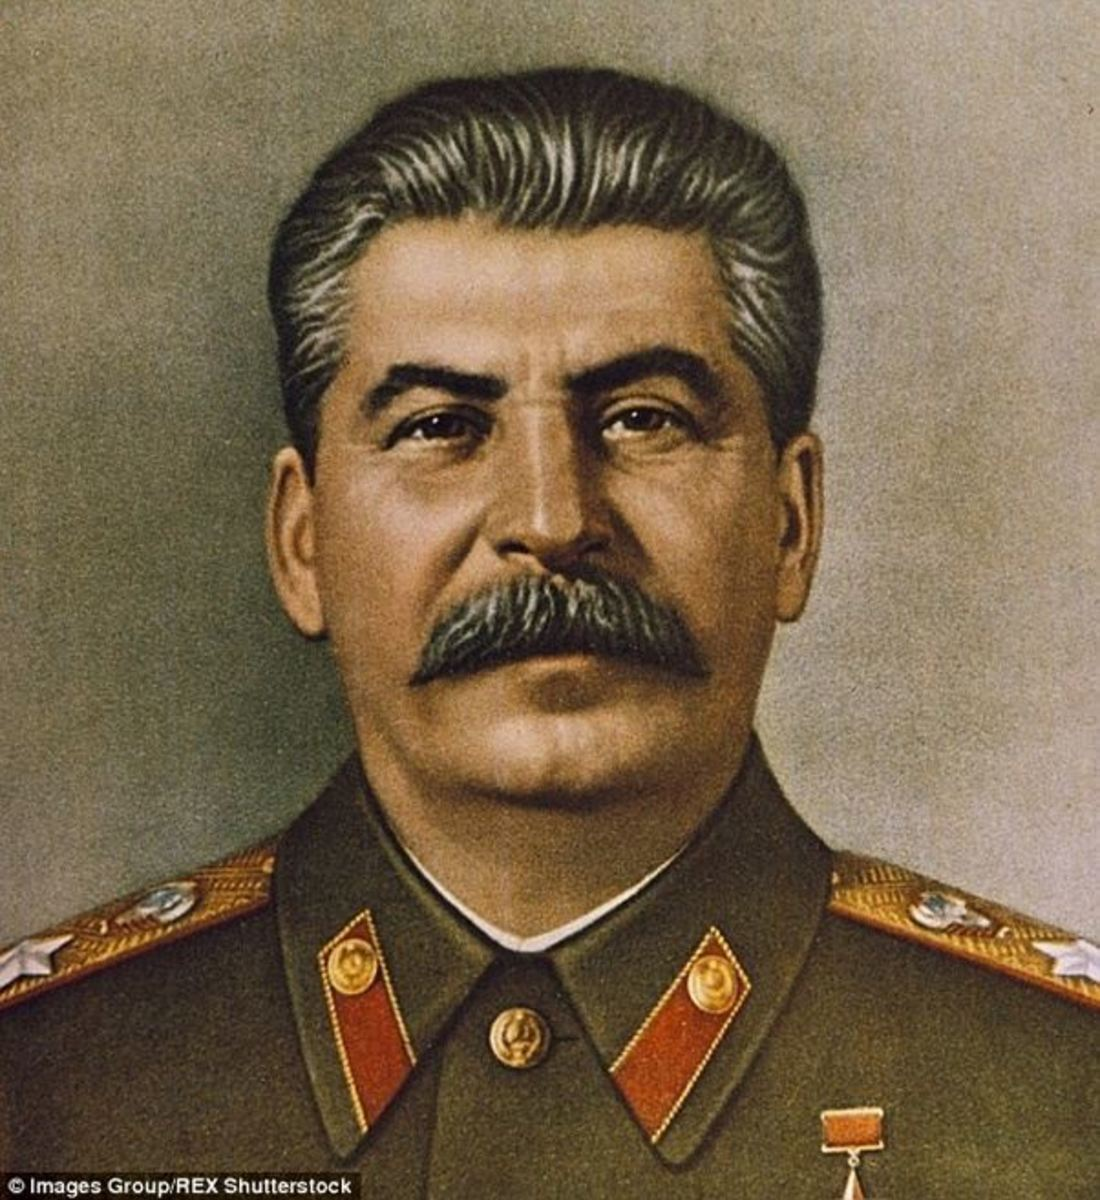 Famous portrait of Joseph Stalin.